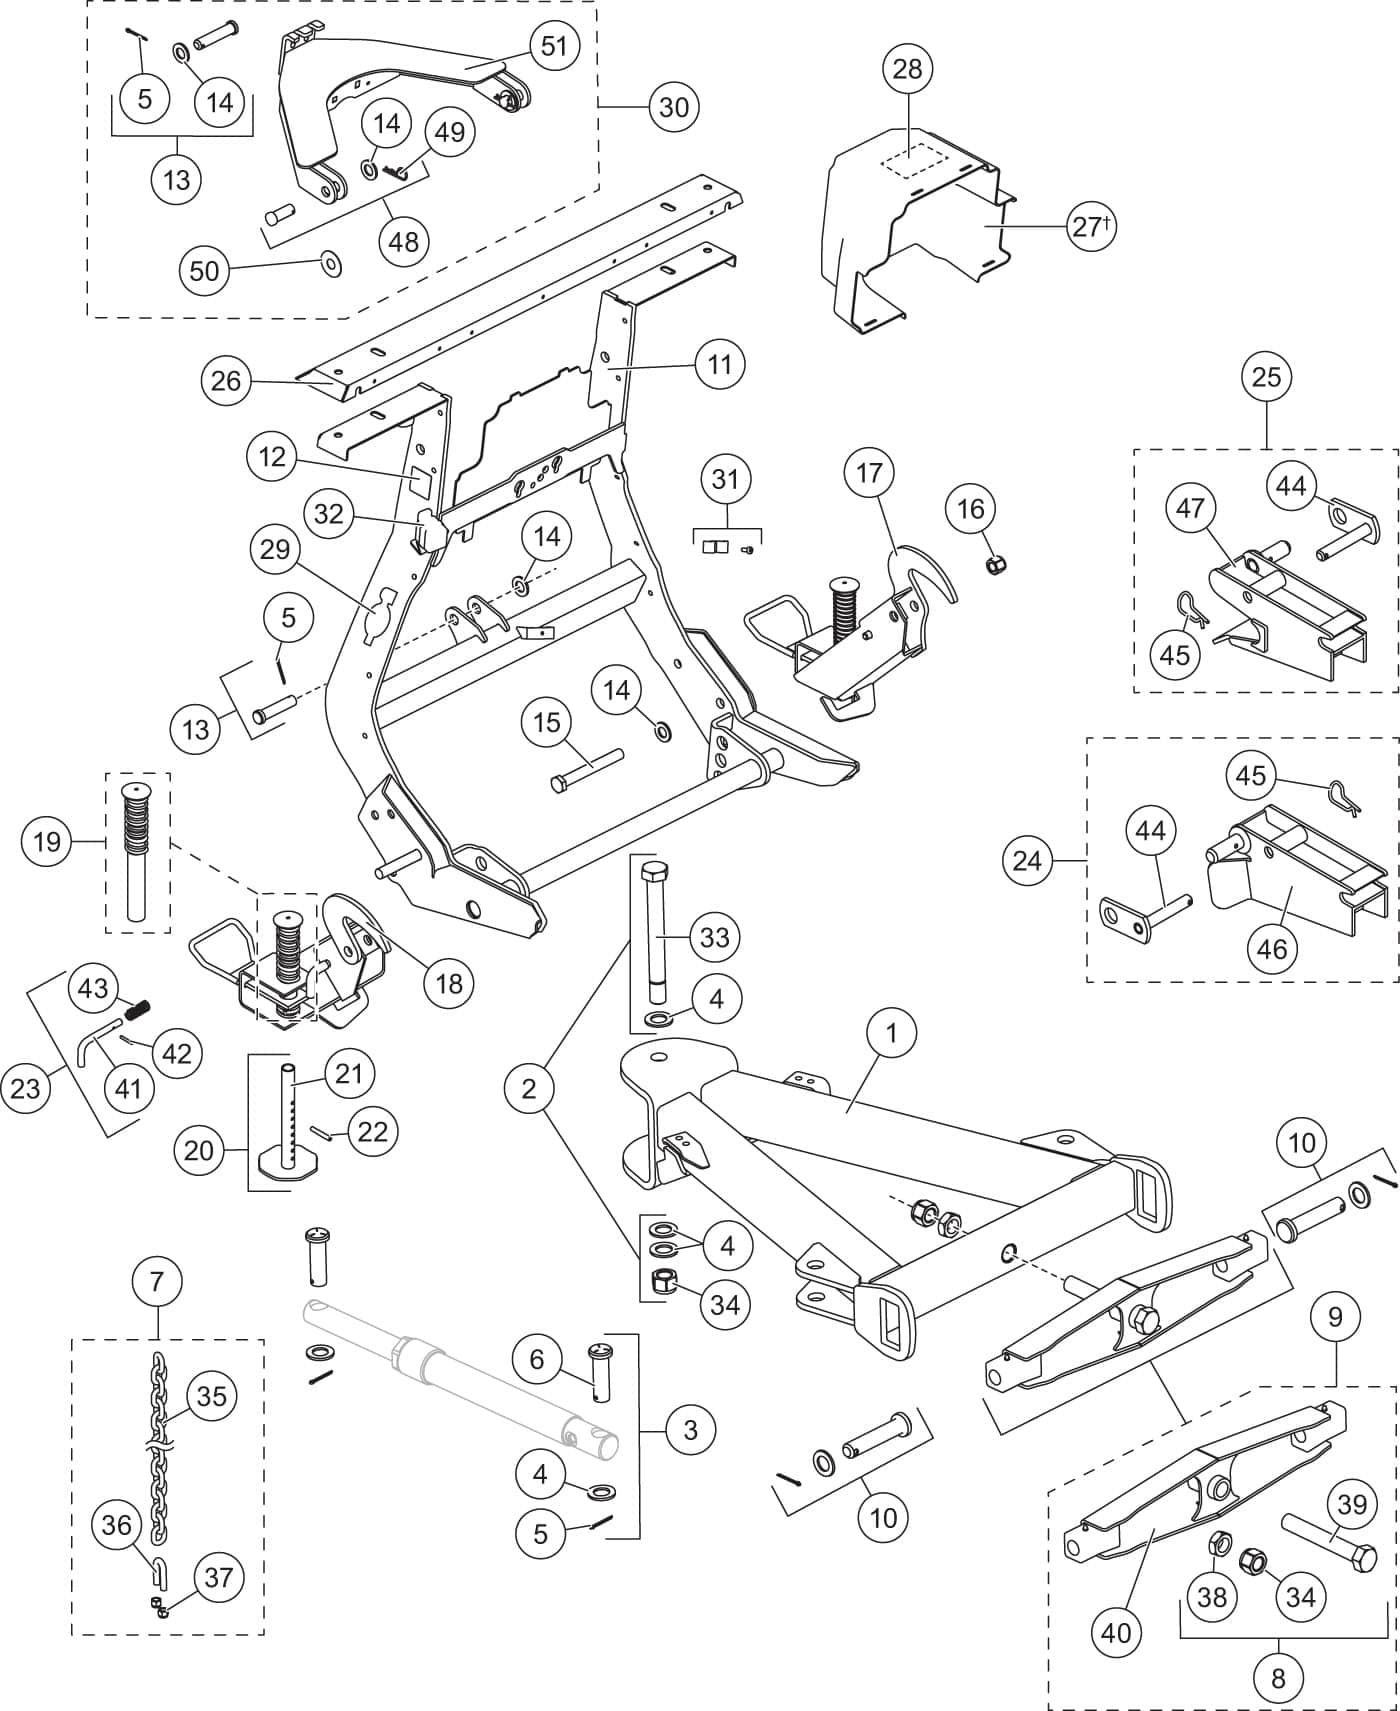 Admirable Printable Western Plow Spreader Specs Western Products Wiring Cloud Inklaidewilluminateatxorg